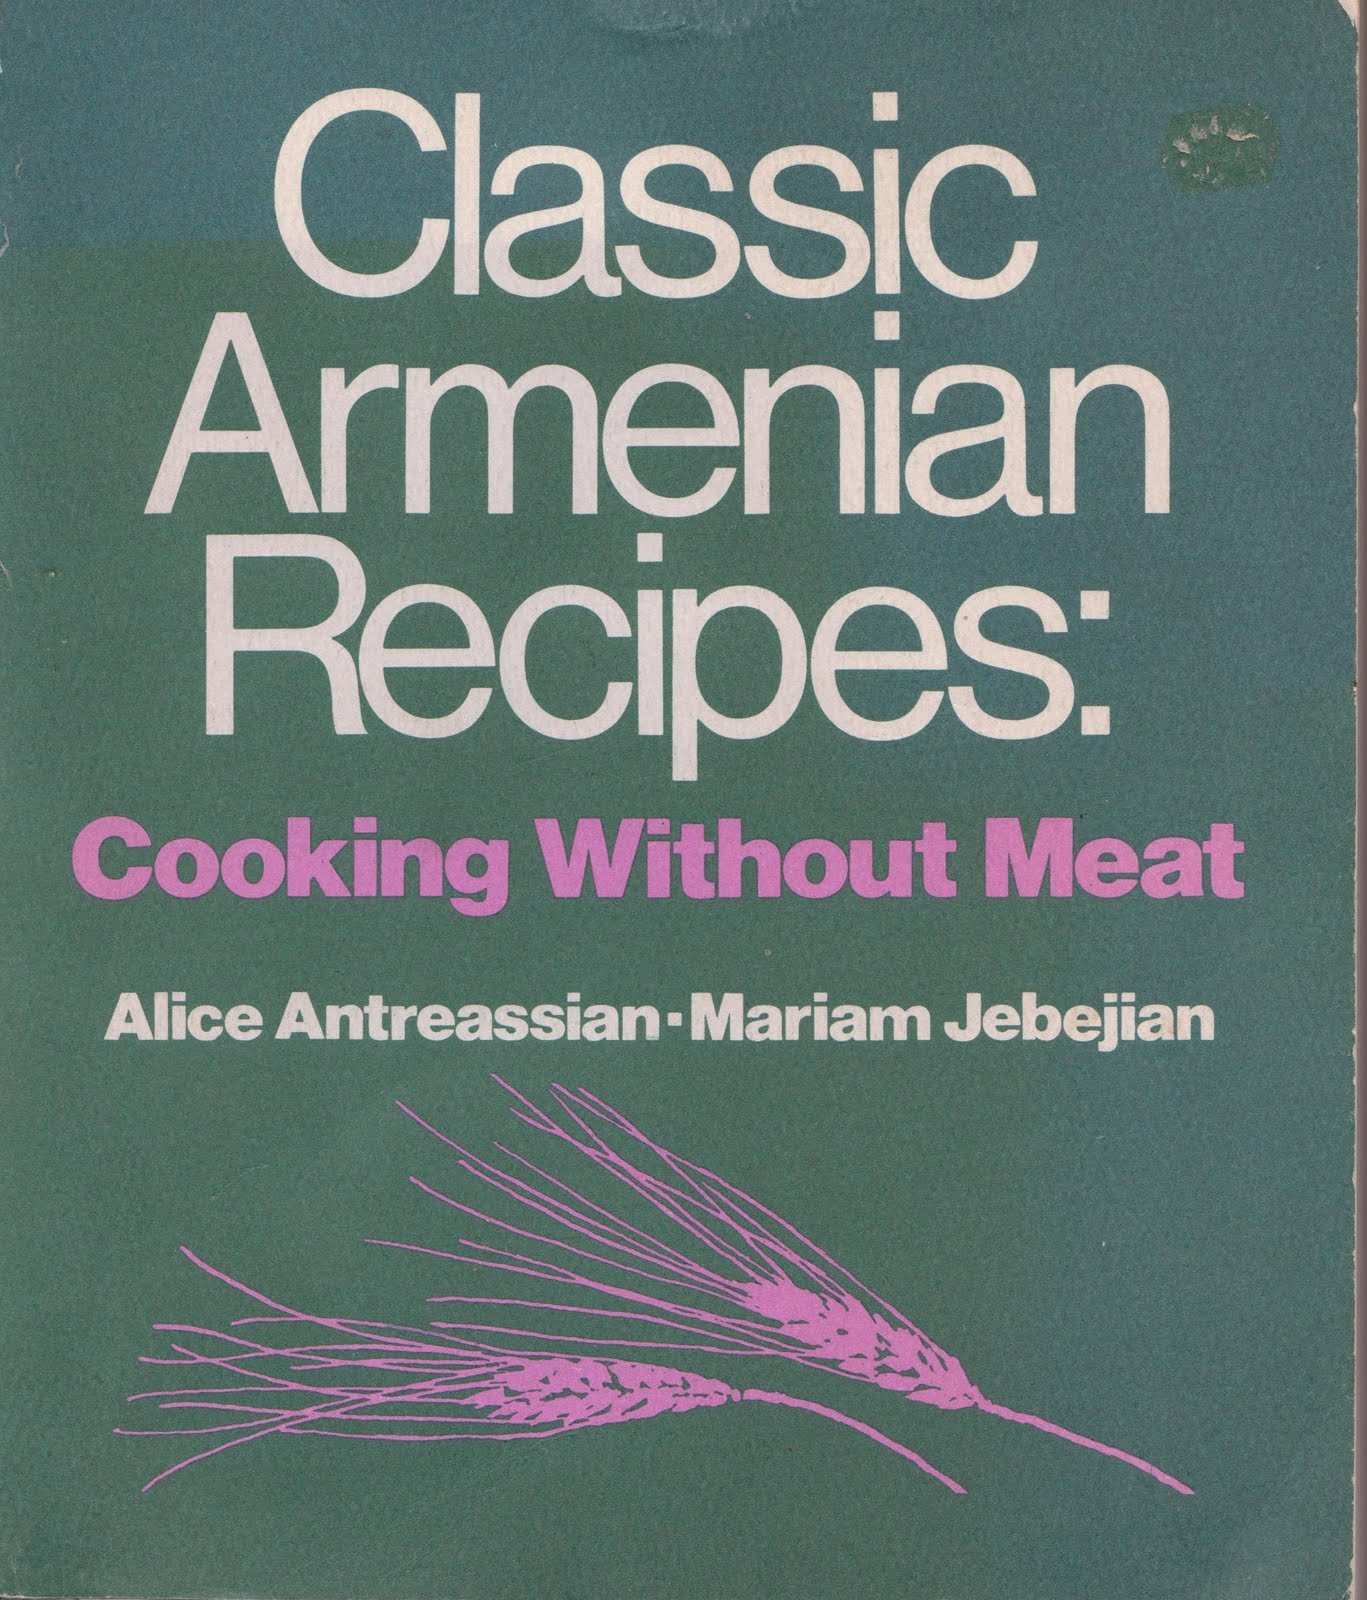 Classic armenian recipes for Armenian cuisine cookbook